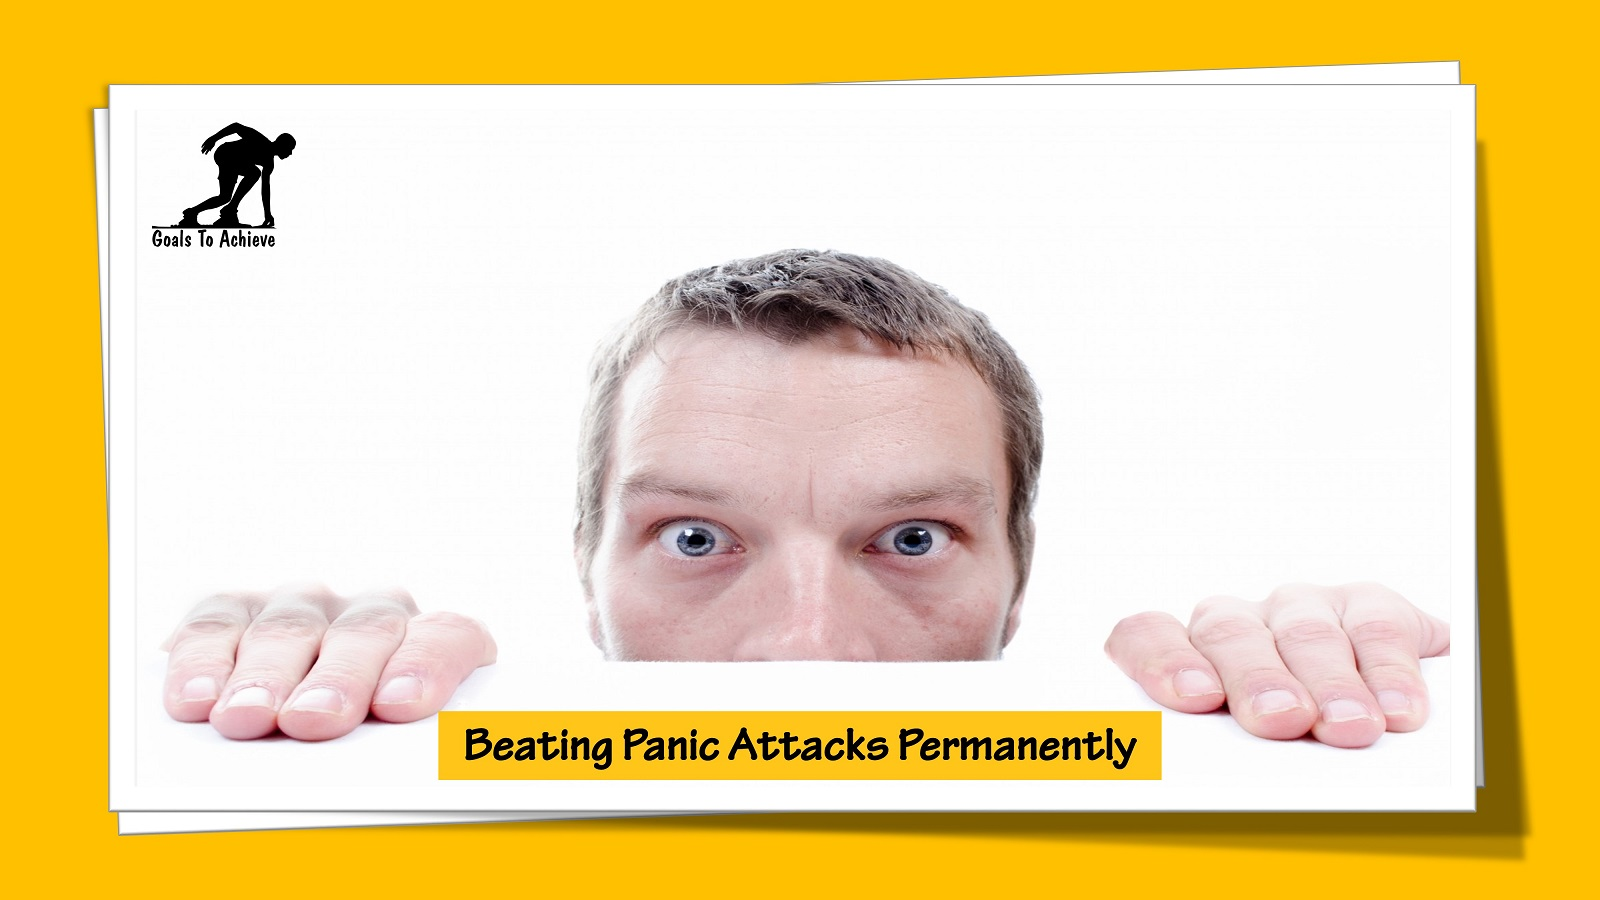 Beating Panic Attacks Permanently